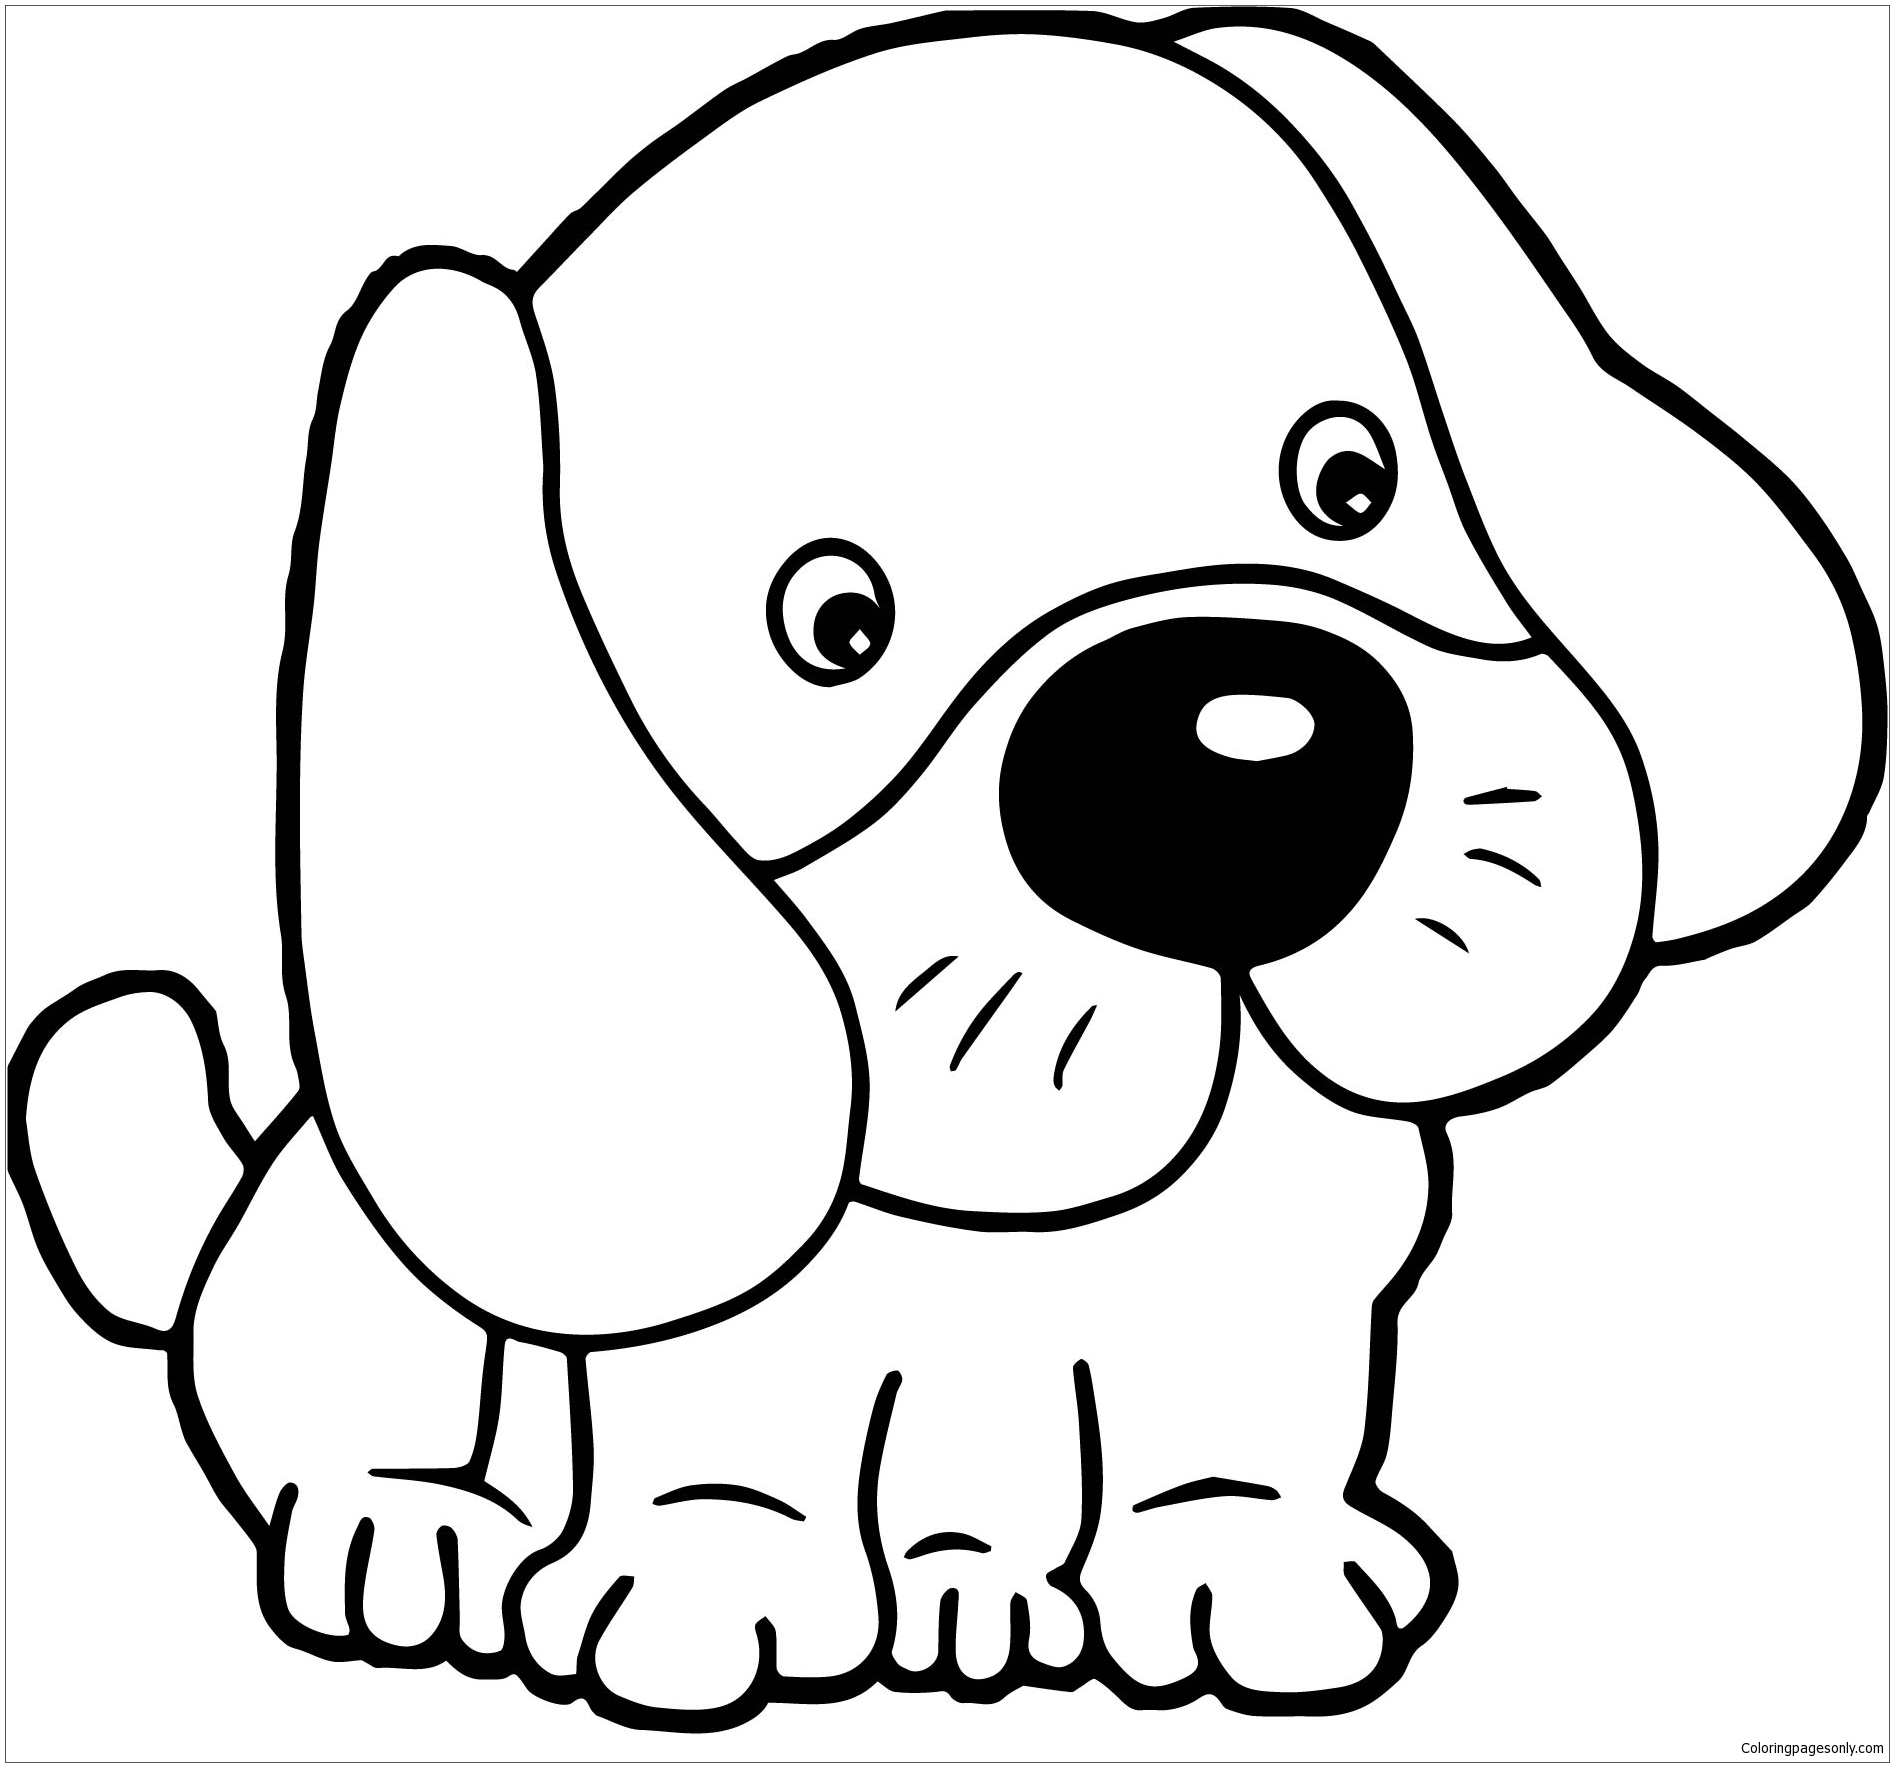 Puppy Dogs Cute Coloring Page Free Coloring Pages Online